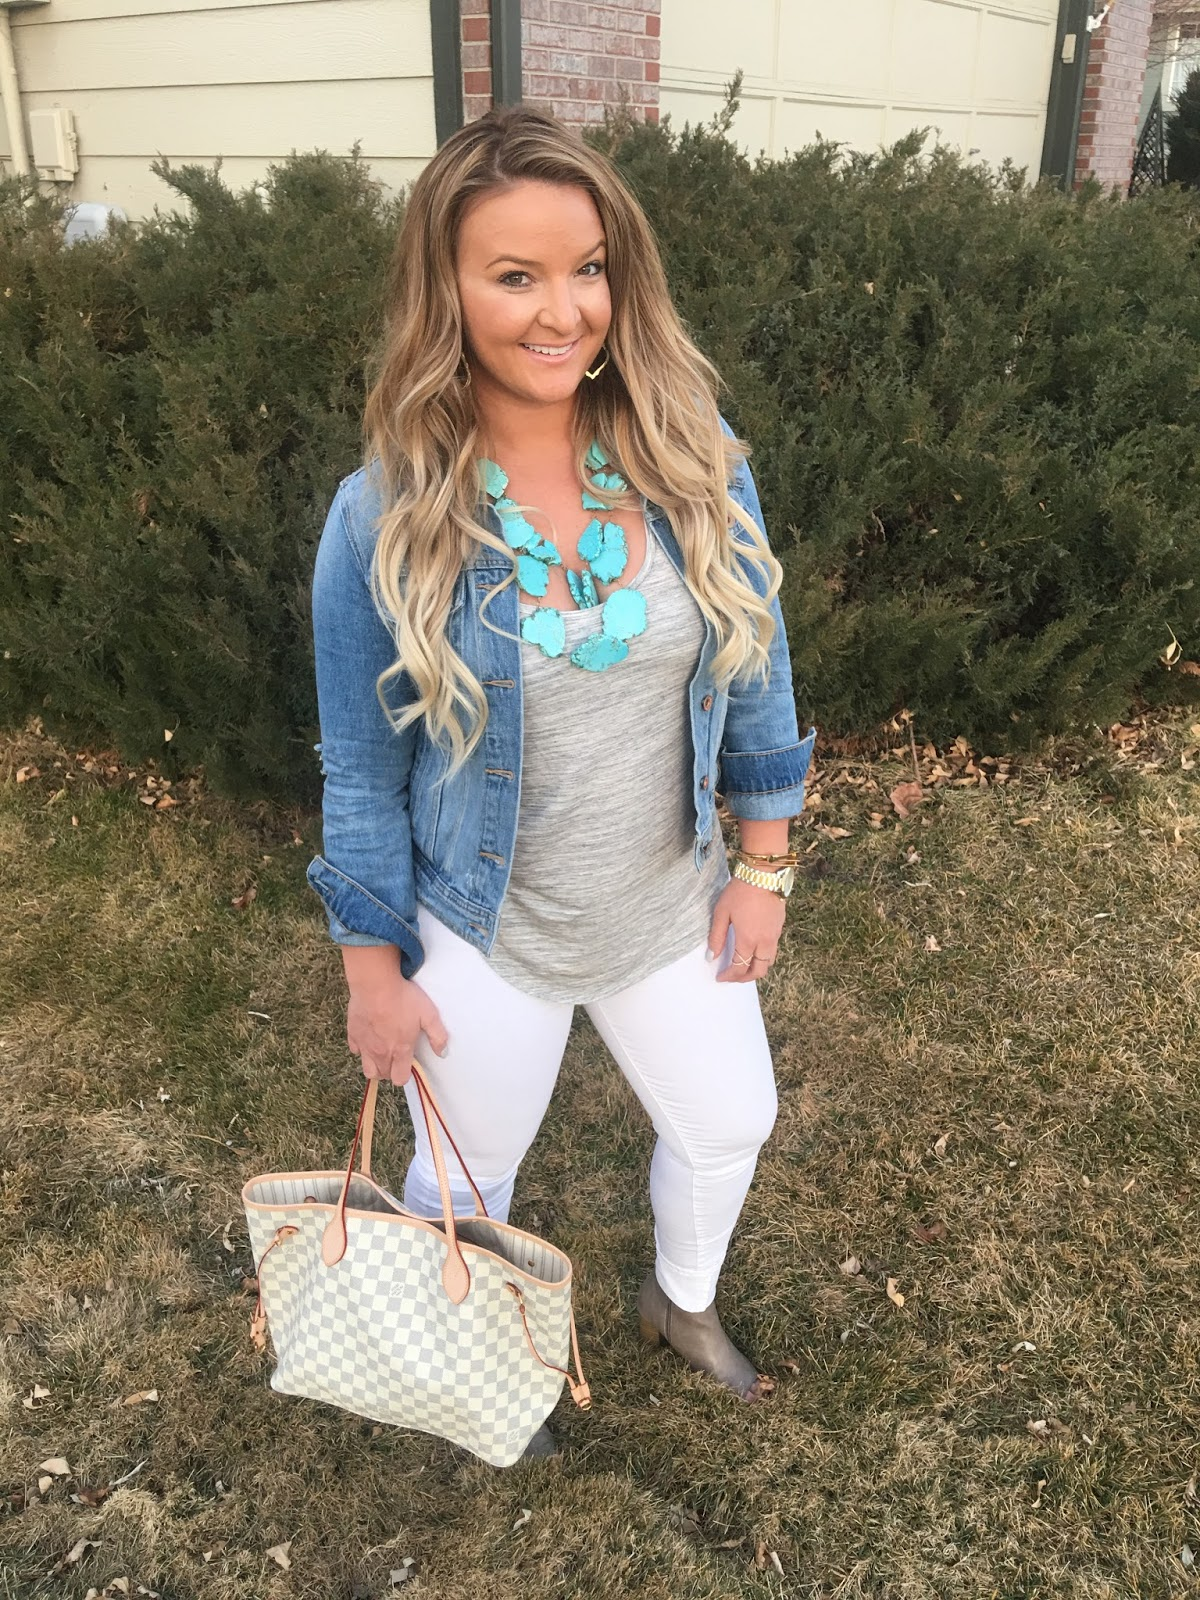 Turks & Winter White After Labor Day by Denver fashion blogger Delayna Denaye